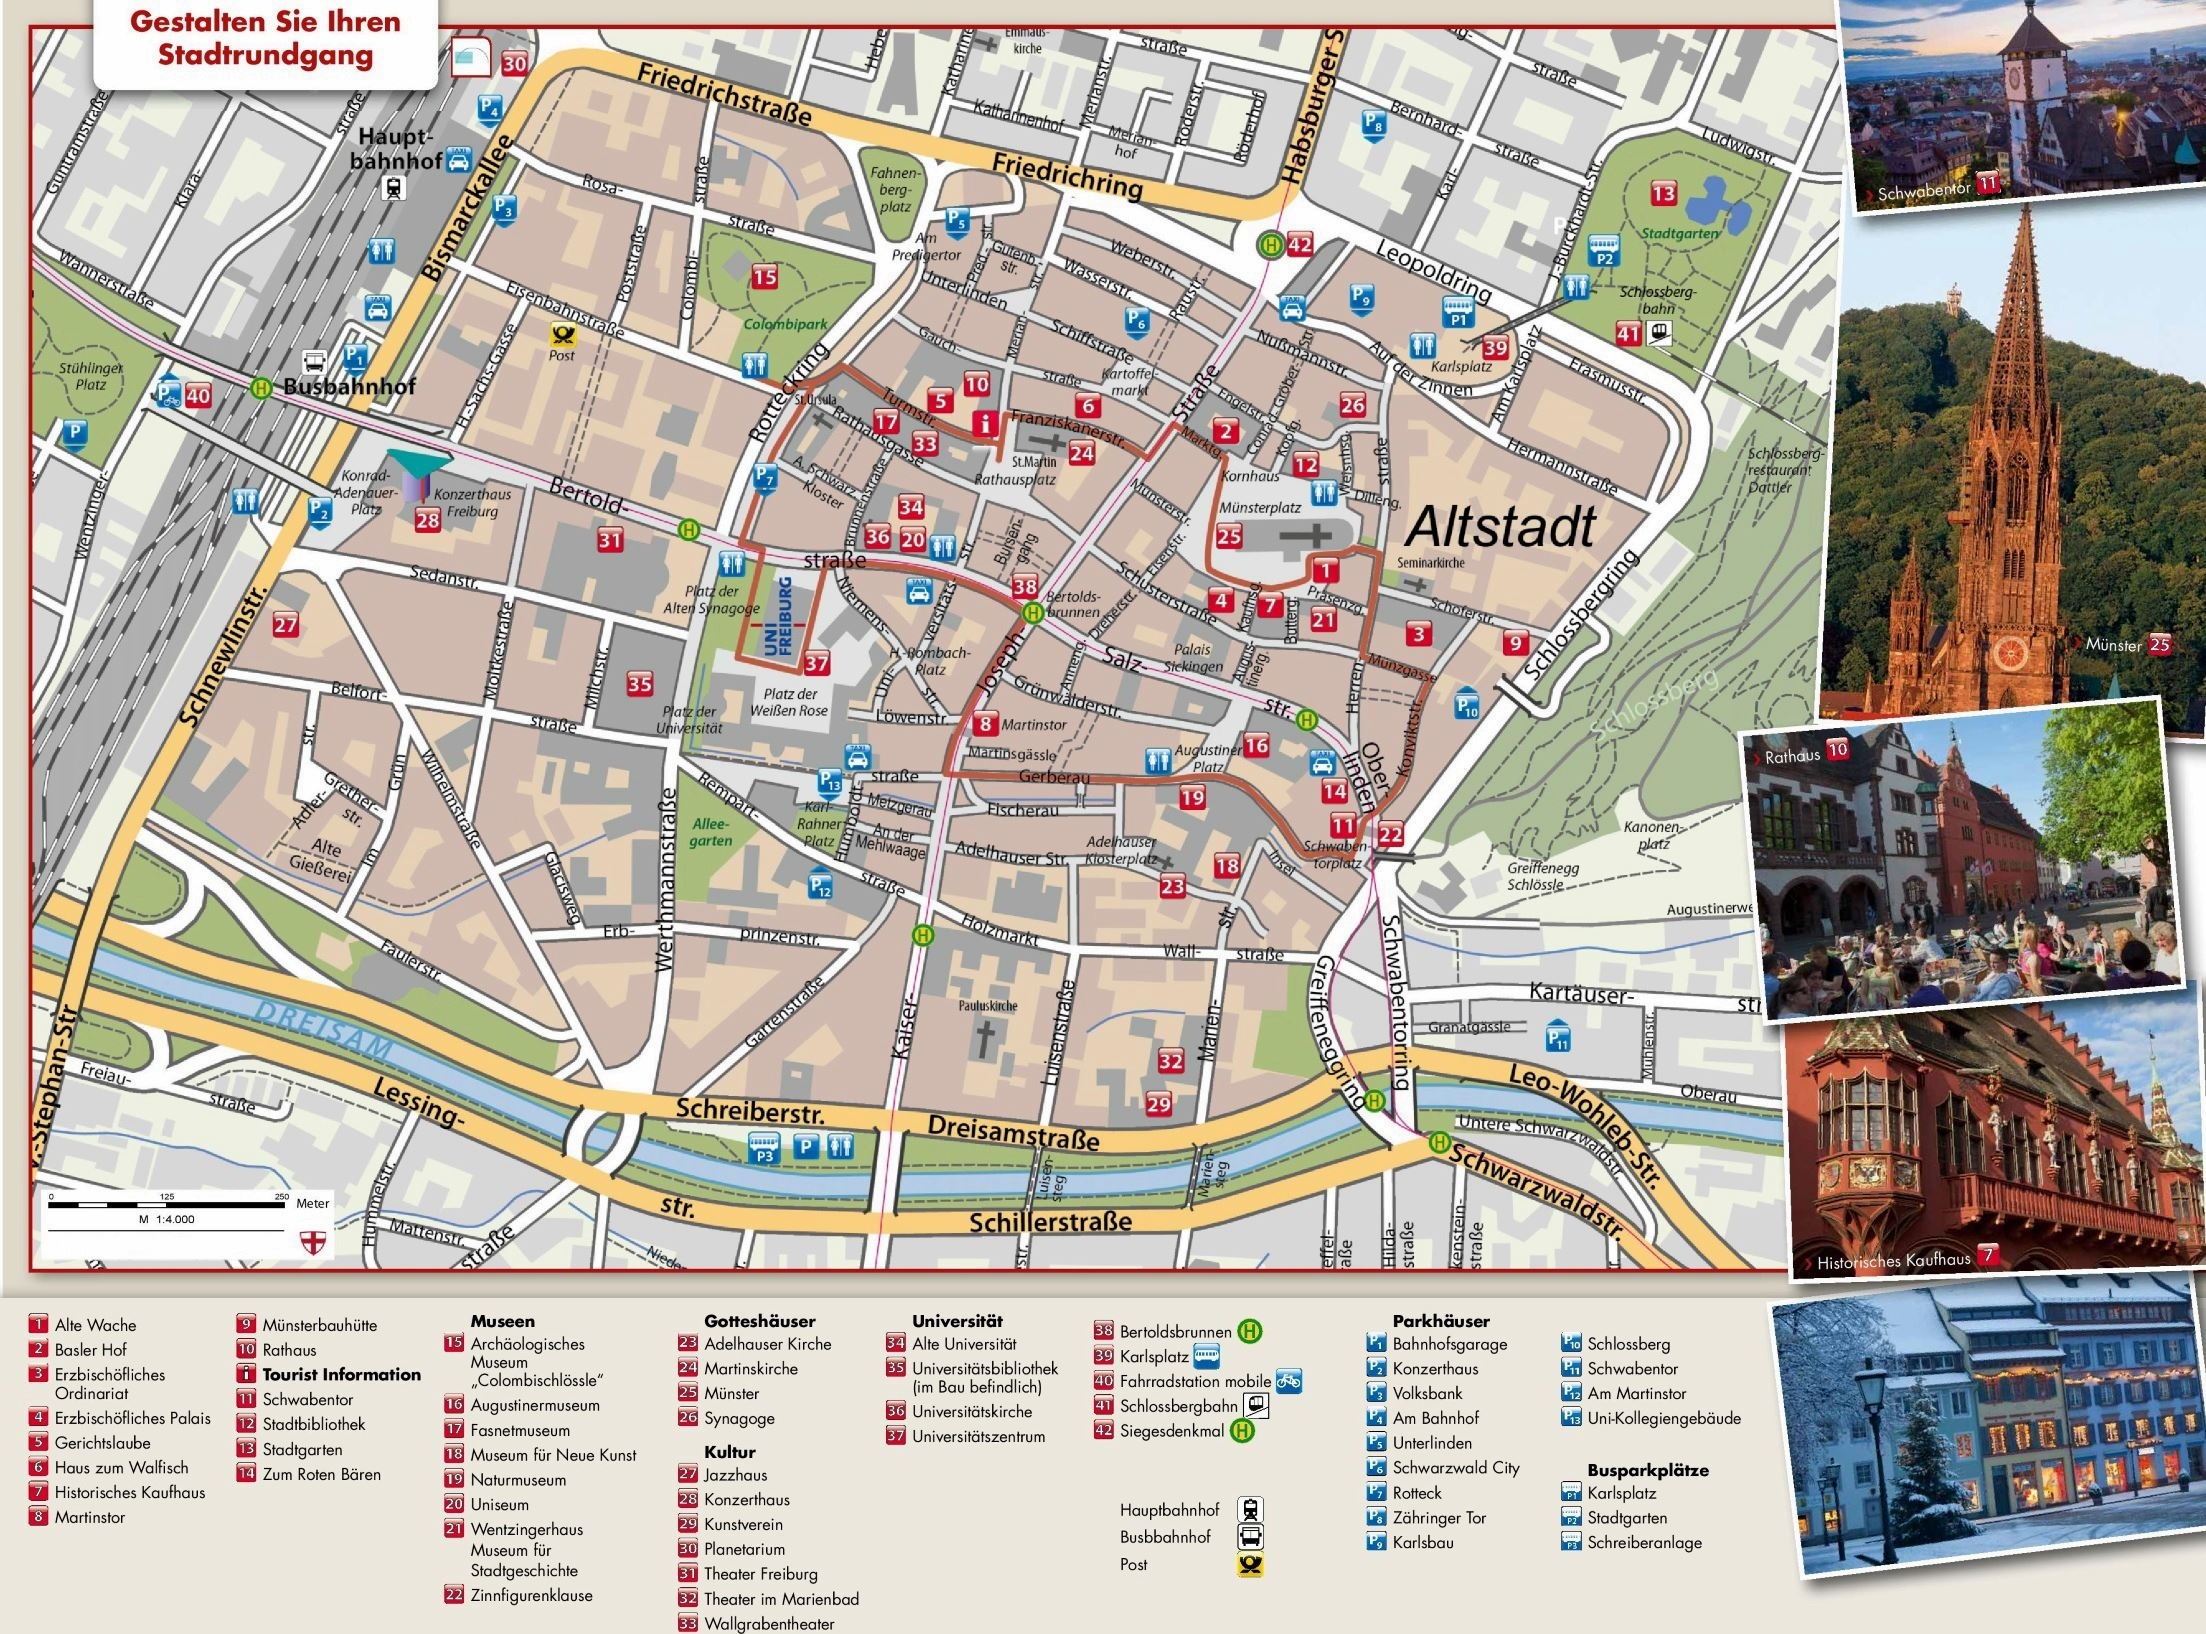 Large Freiburg Im Breisgau Maps For Free Download And Print   High for Map Of Germany Showing Freiburg